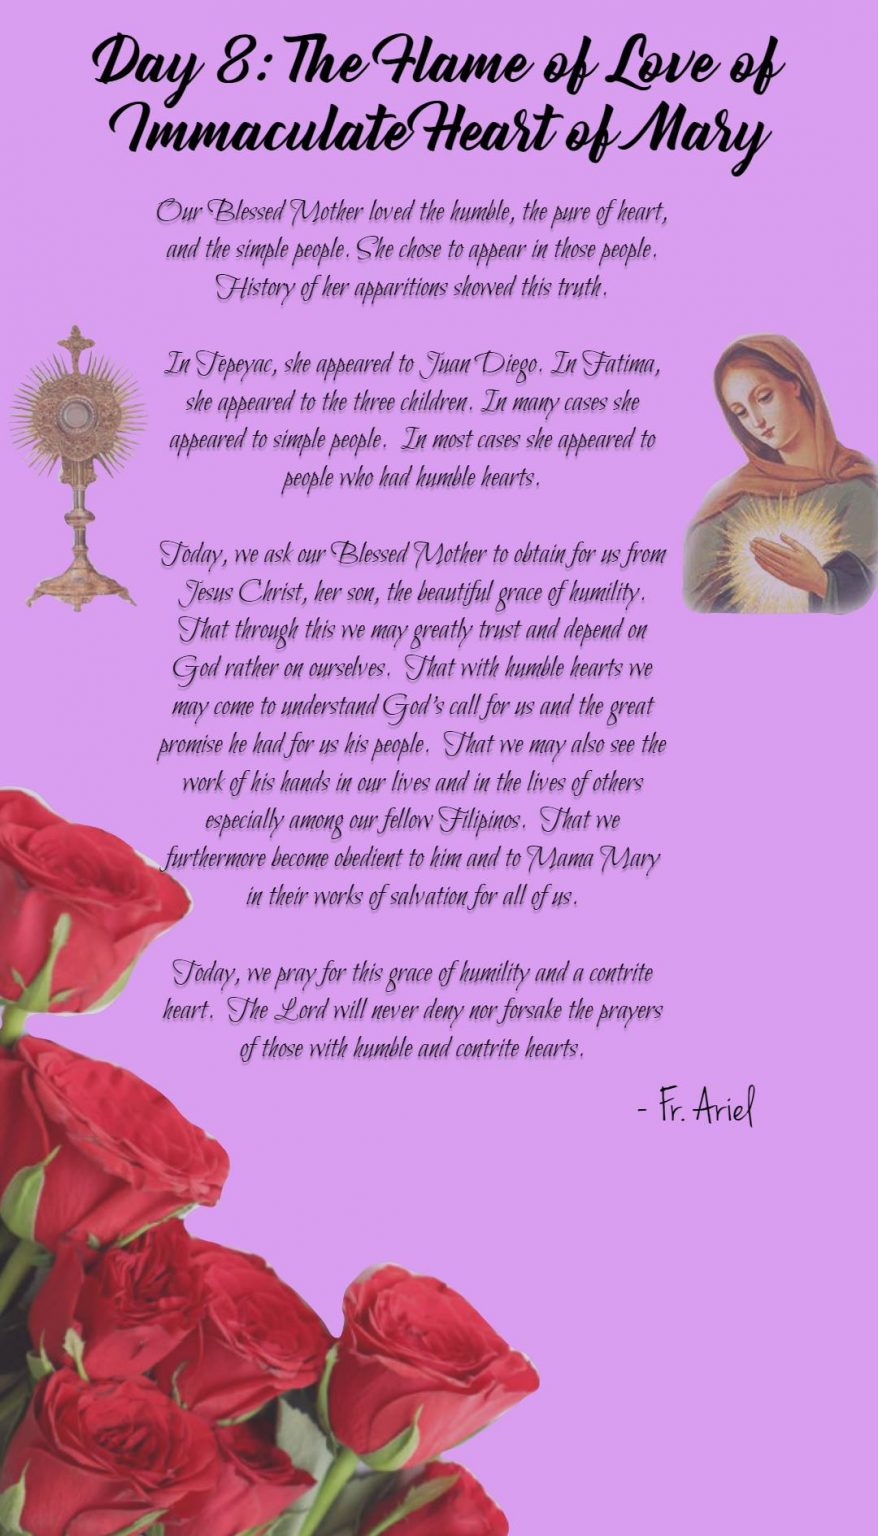 Eighth day of Novena